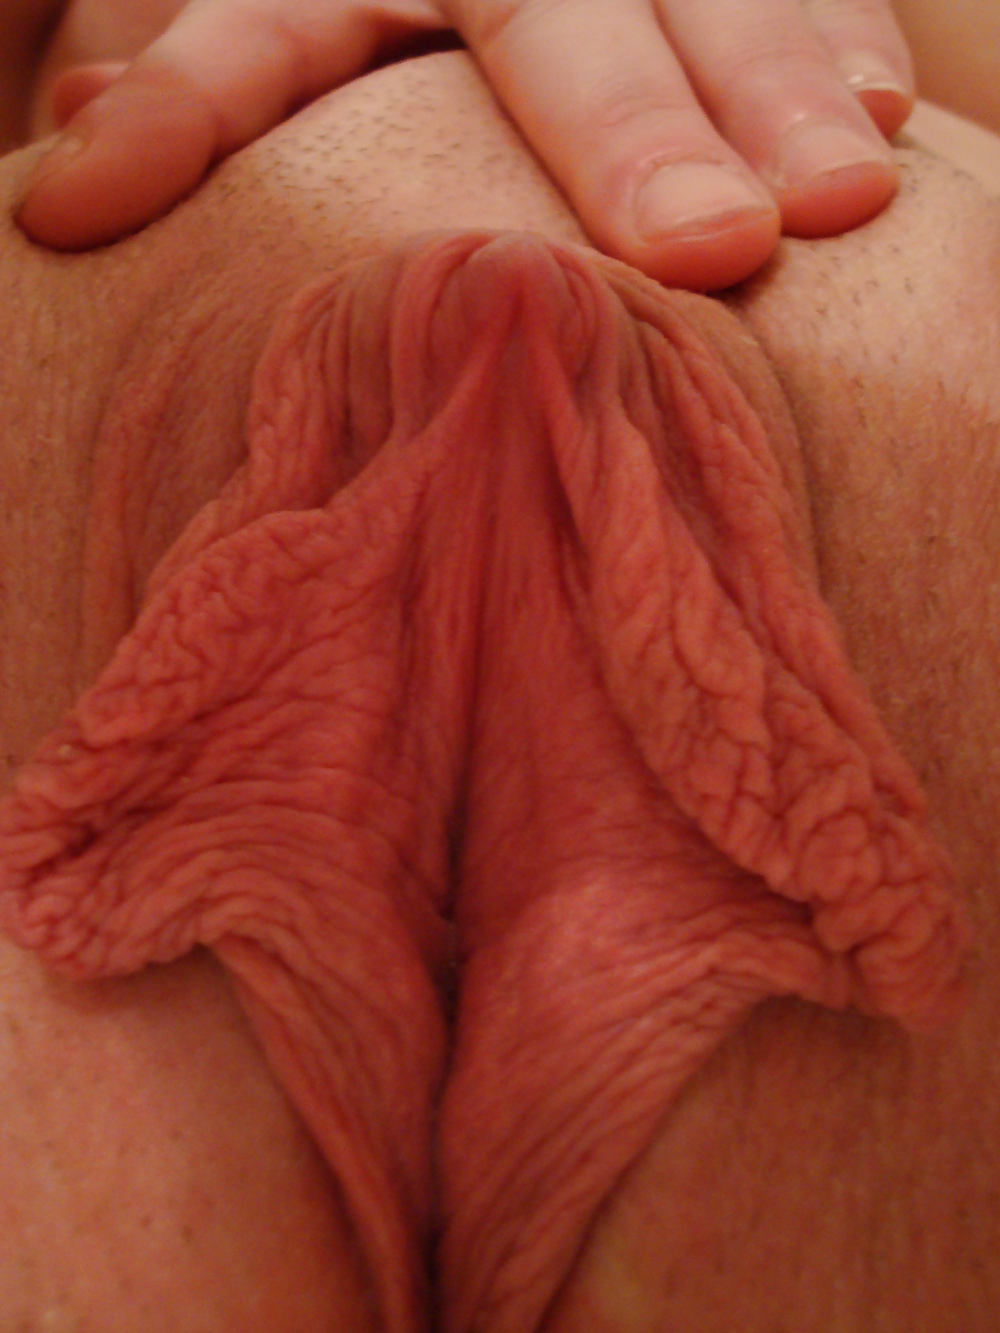 Squirting monster pussy lip rings girl sucking